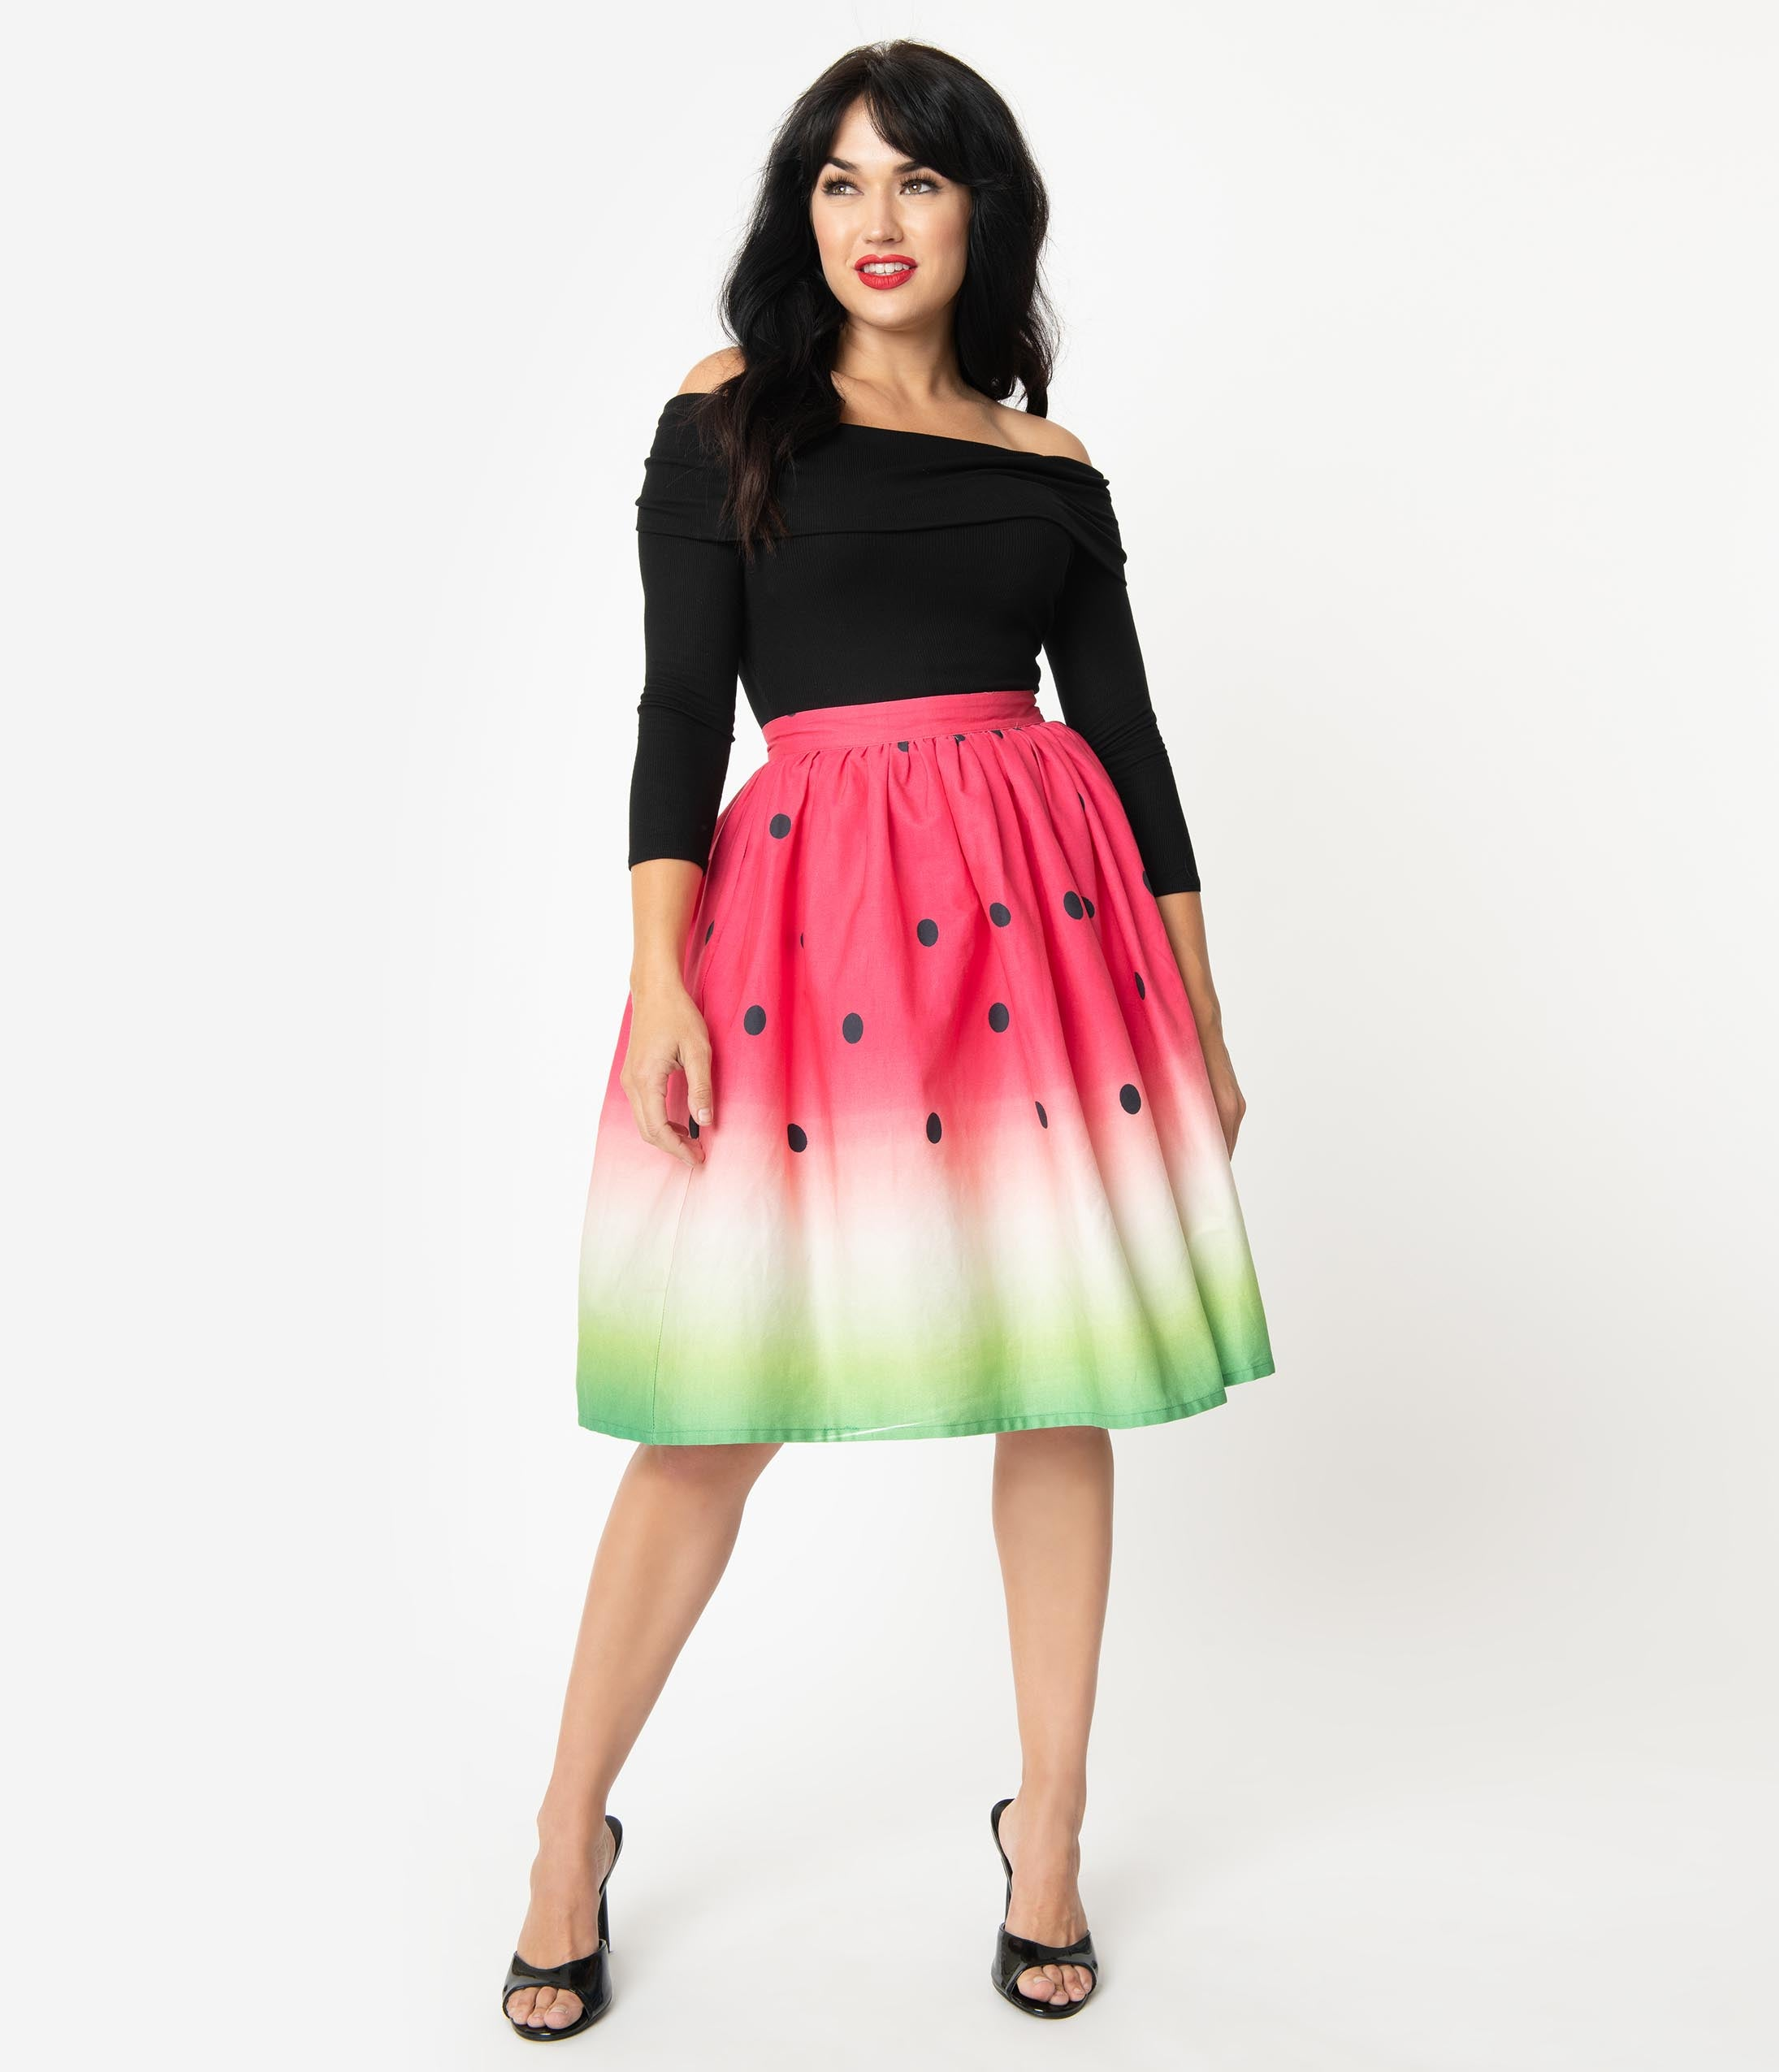 What Did Women Wear in the 1950s? 1950s Fashion Guide Unique Vintage 1950S High Waist Watermelon Circle Swing Skirt $68.00 AT vintagedancer.com